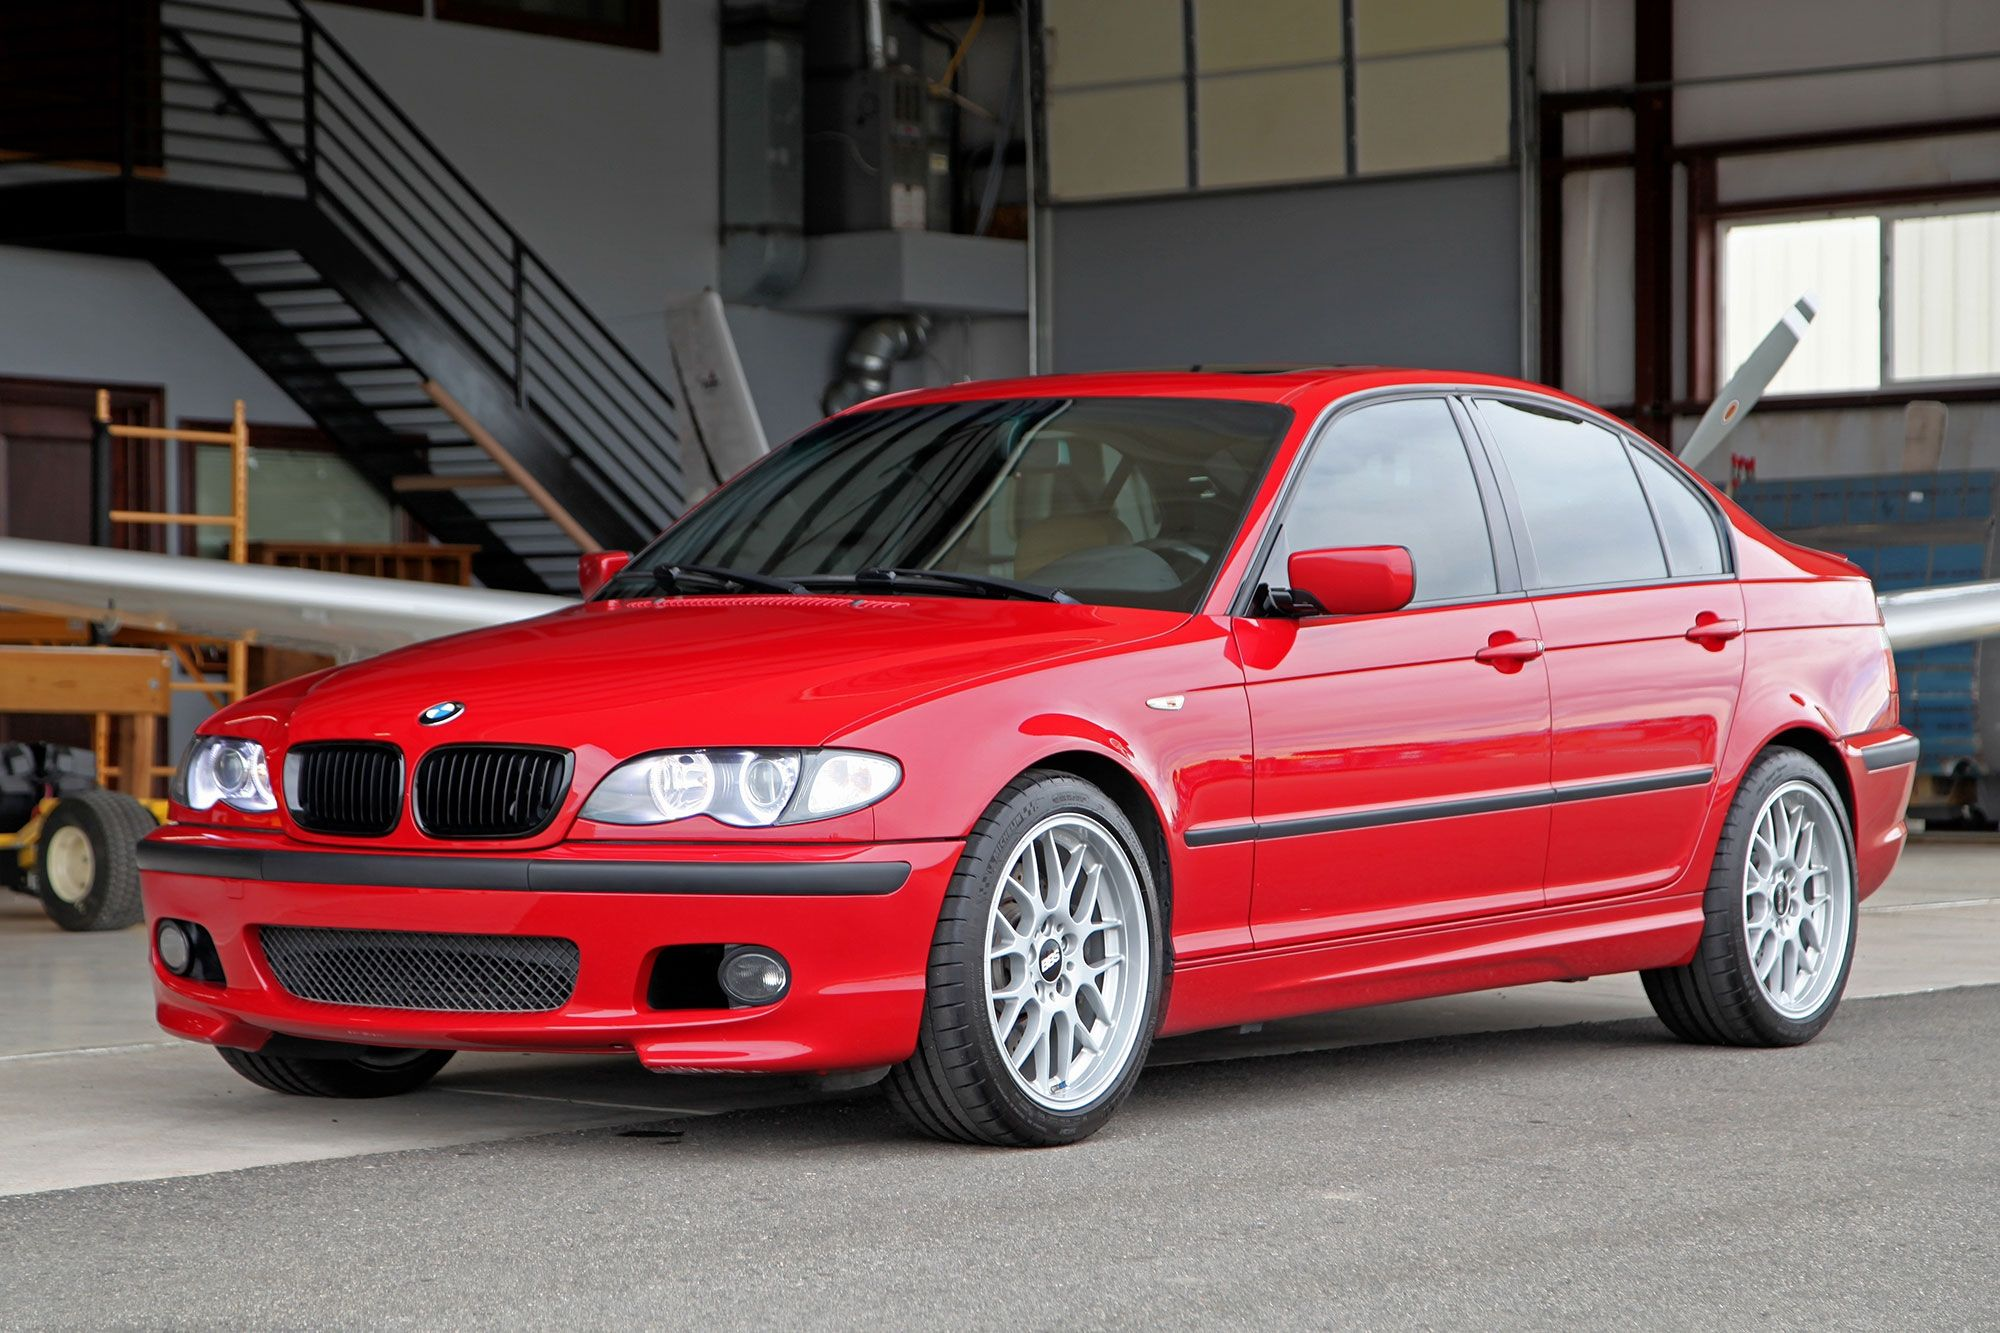 2003 Bmw 330i Zhp Cars Pinterest Bmw Bmw E46 And Cars